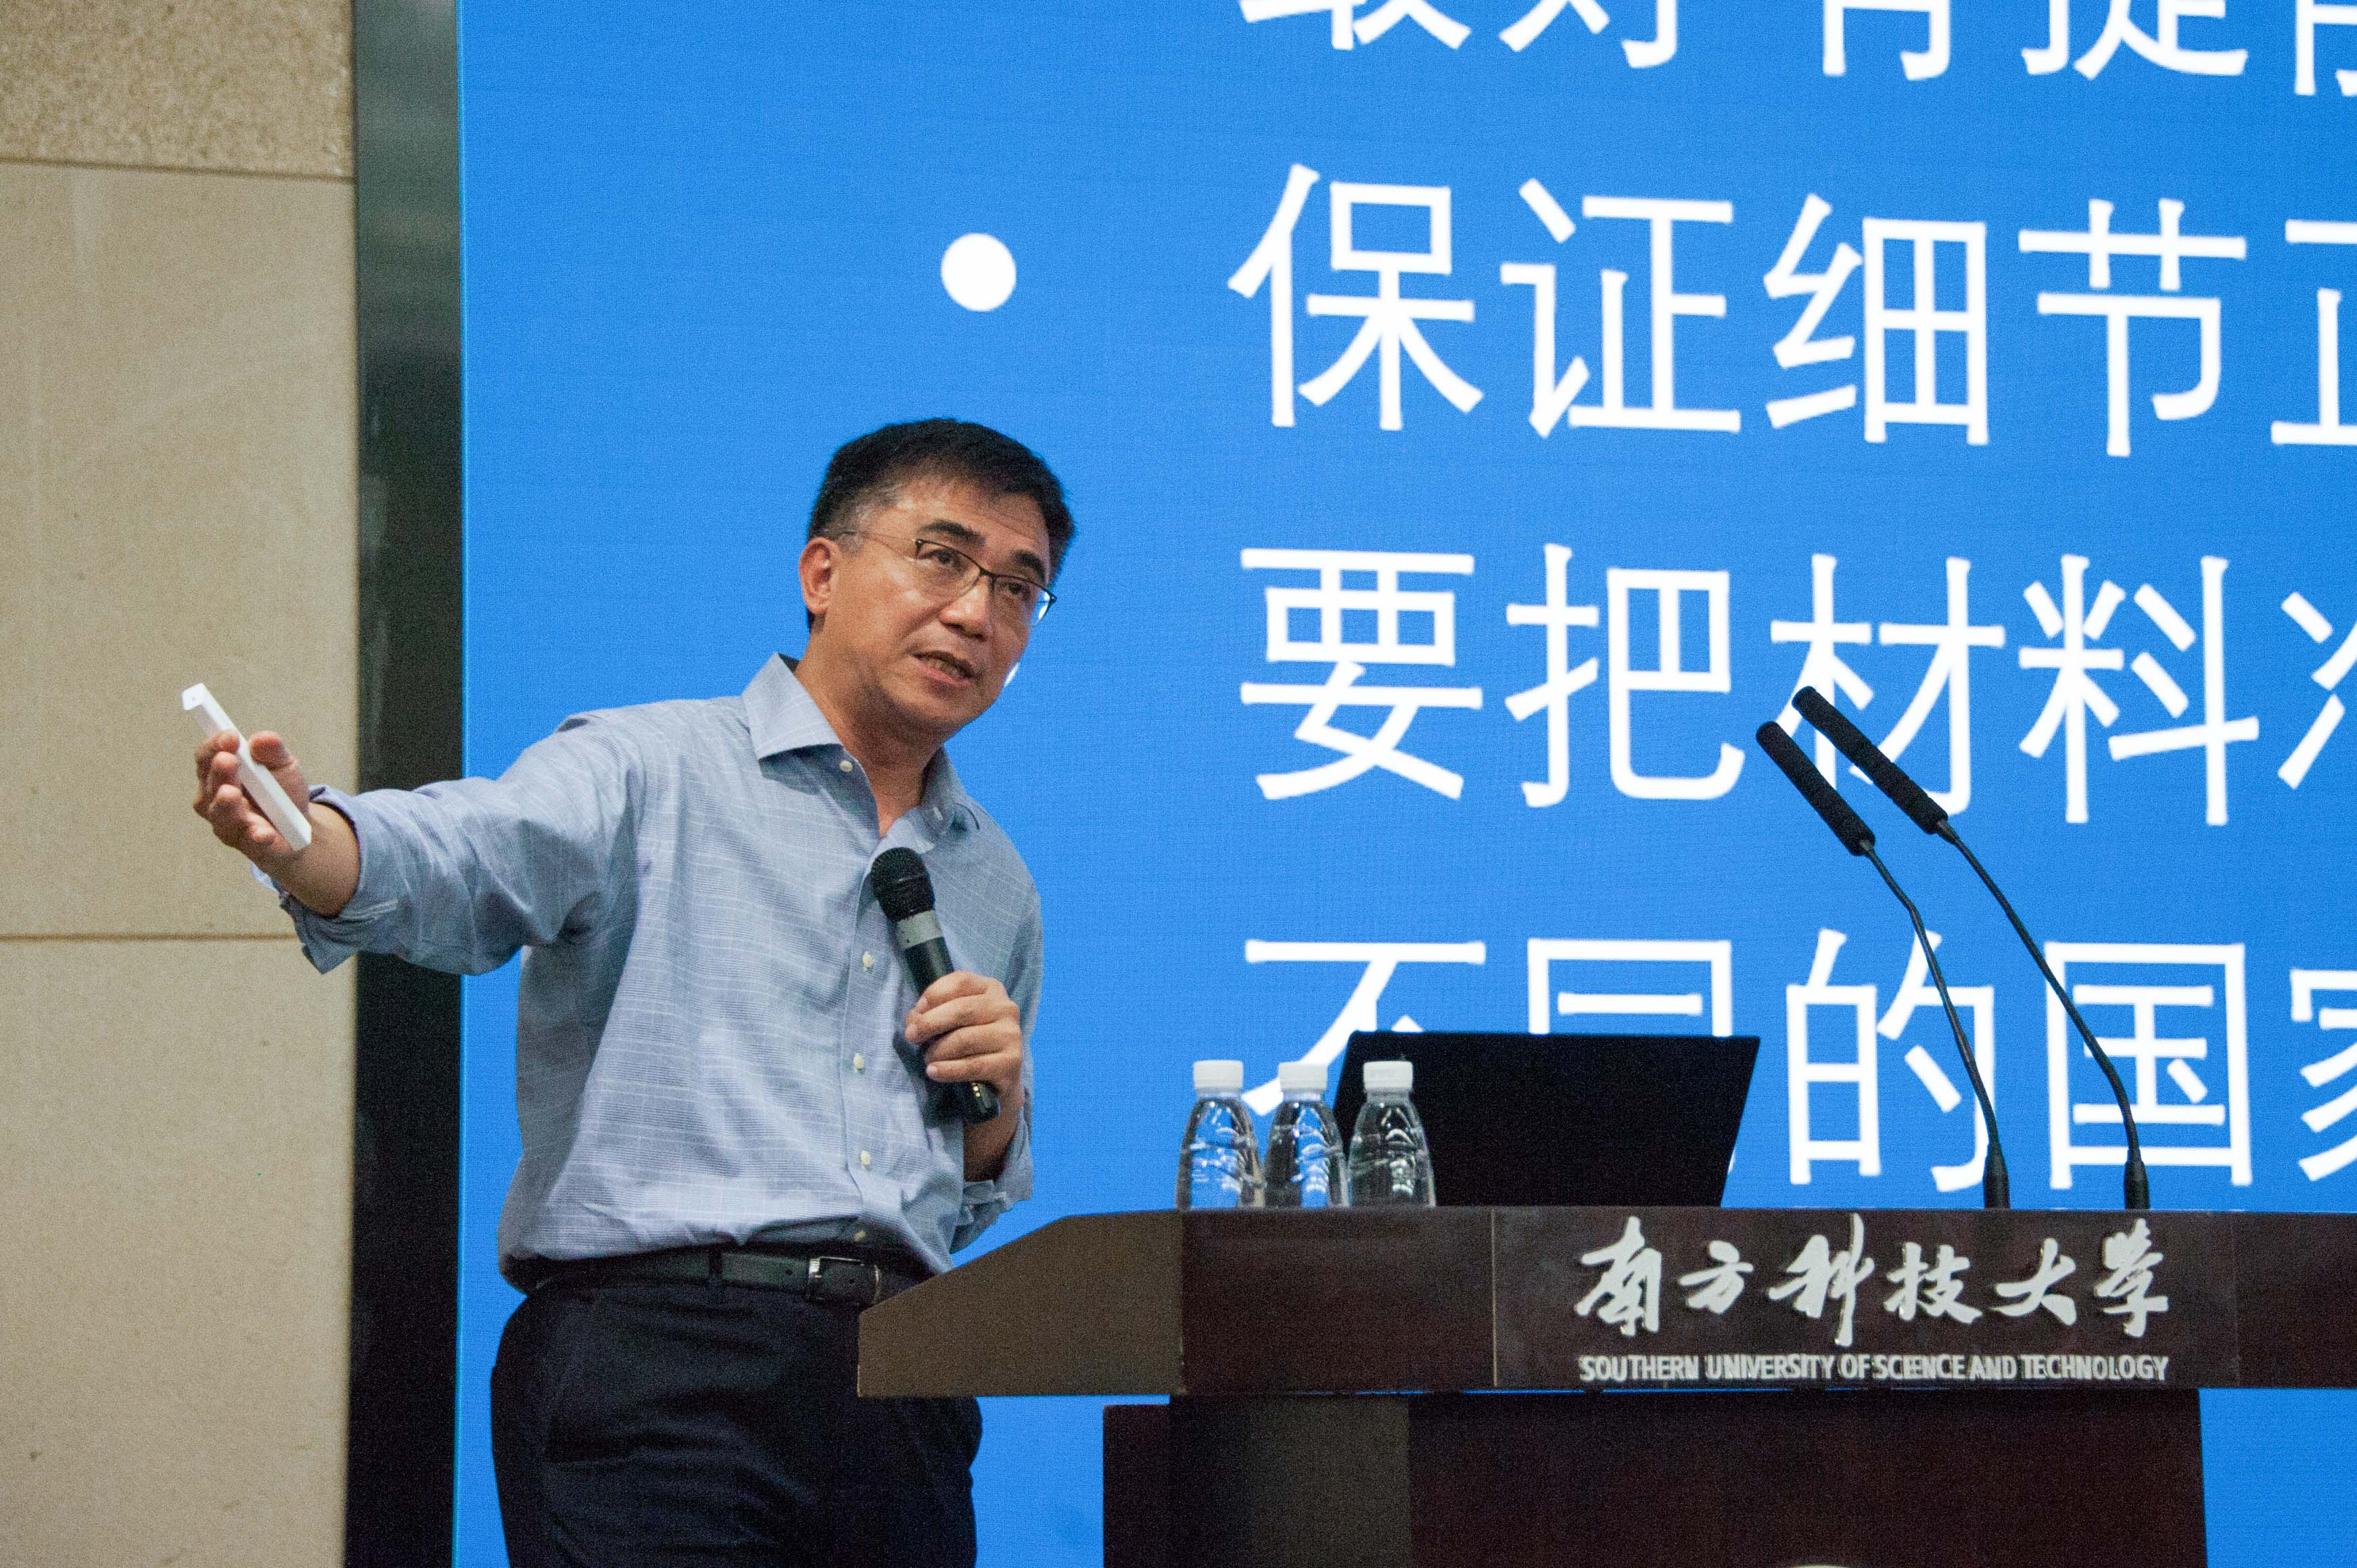 """Vice President Tang Tao's Lecture on """"Being a Future Talent with an International Perspective"""""""